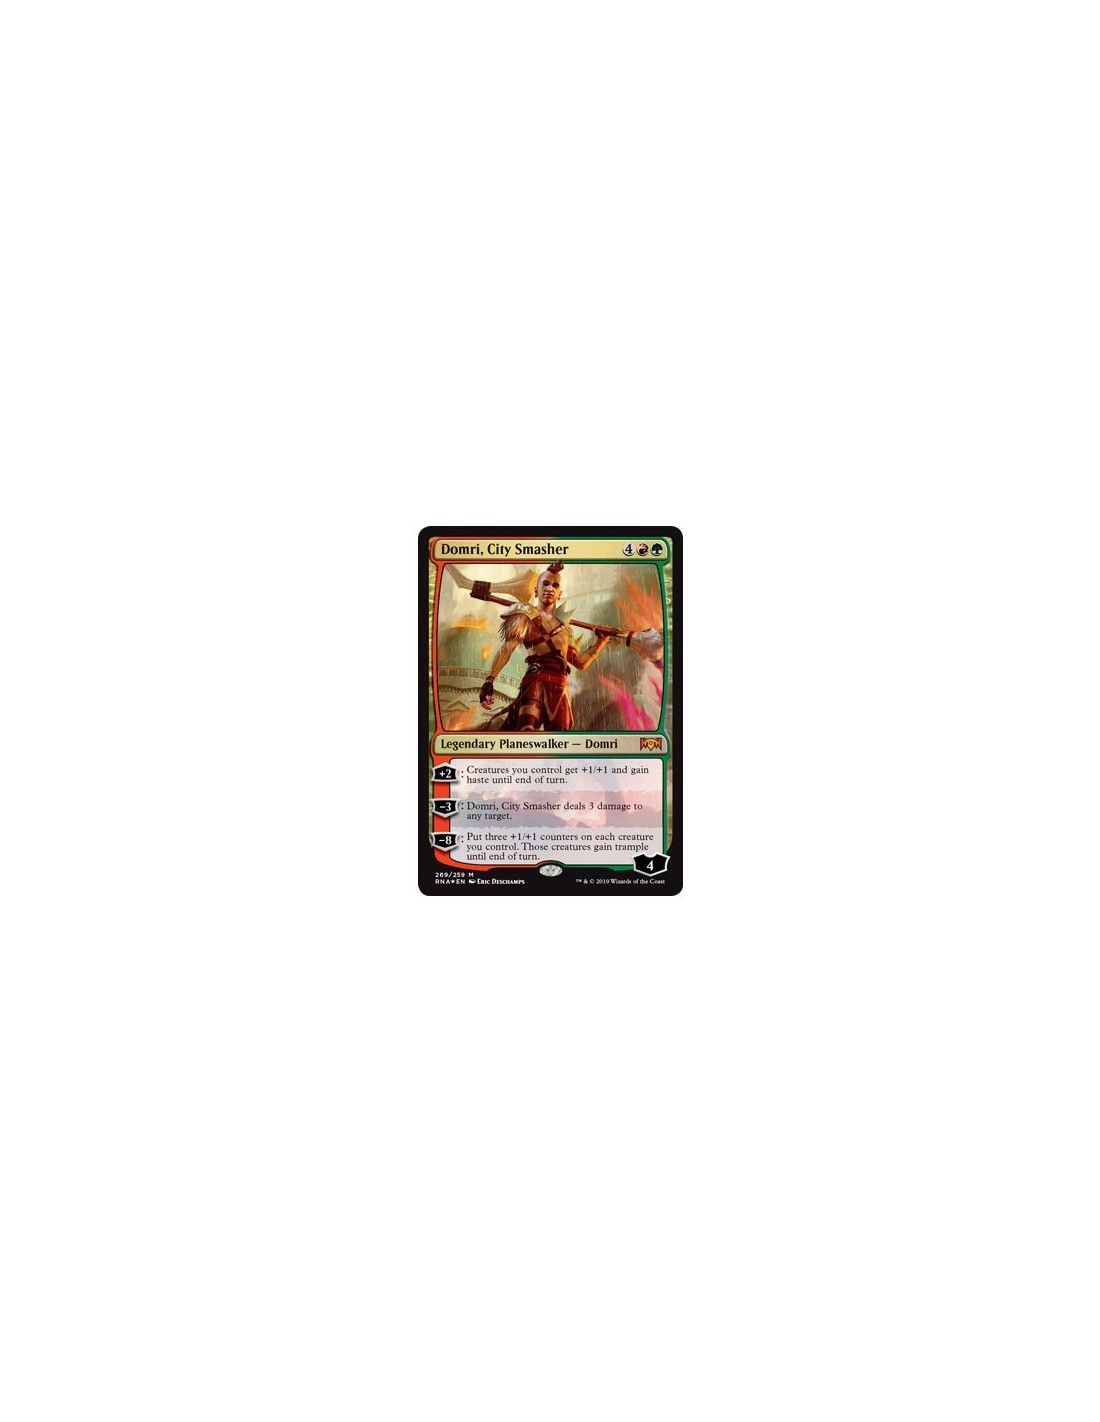 Libros De Magic The Gathering Mazo Planeswalker Deck Domri City Smasher La Lealtad De